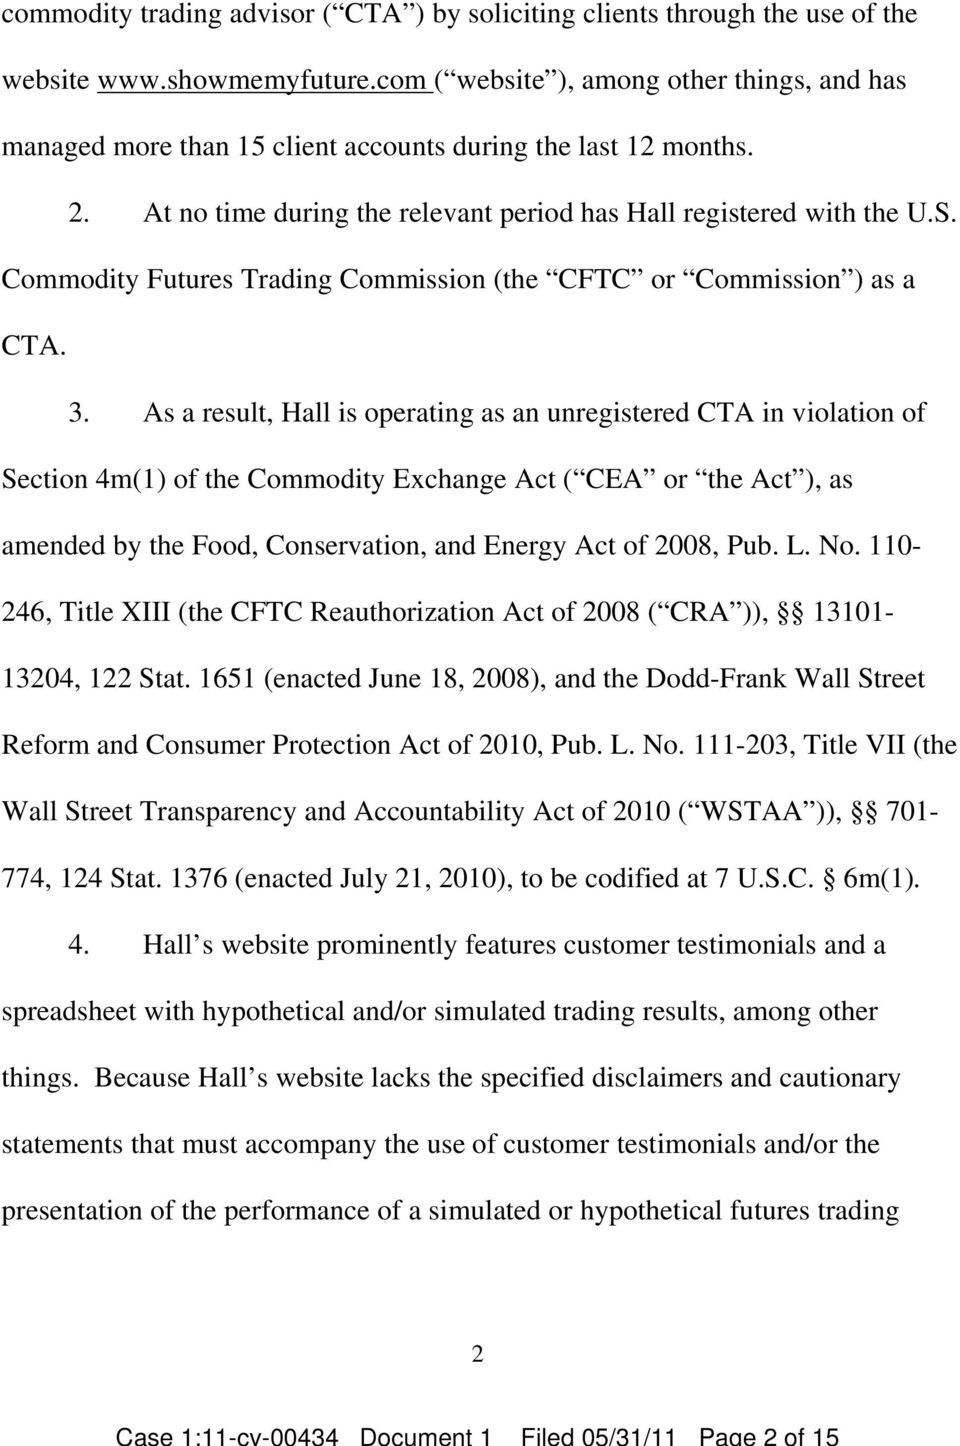 Commodity Futures Trading Commission (the CFTC or Commission as a CTA. 3.